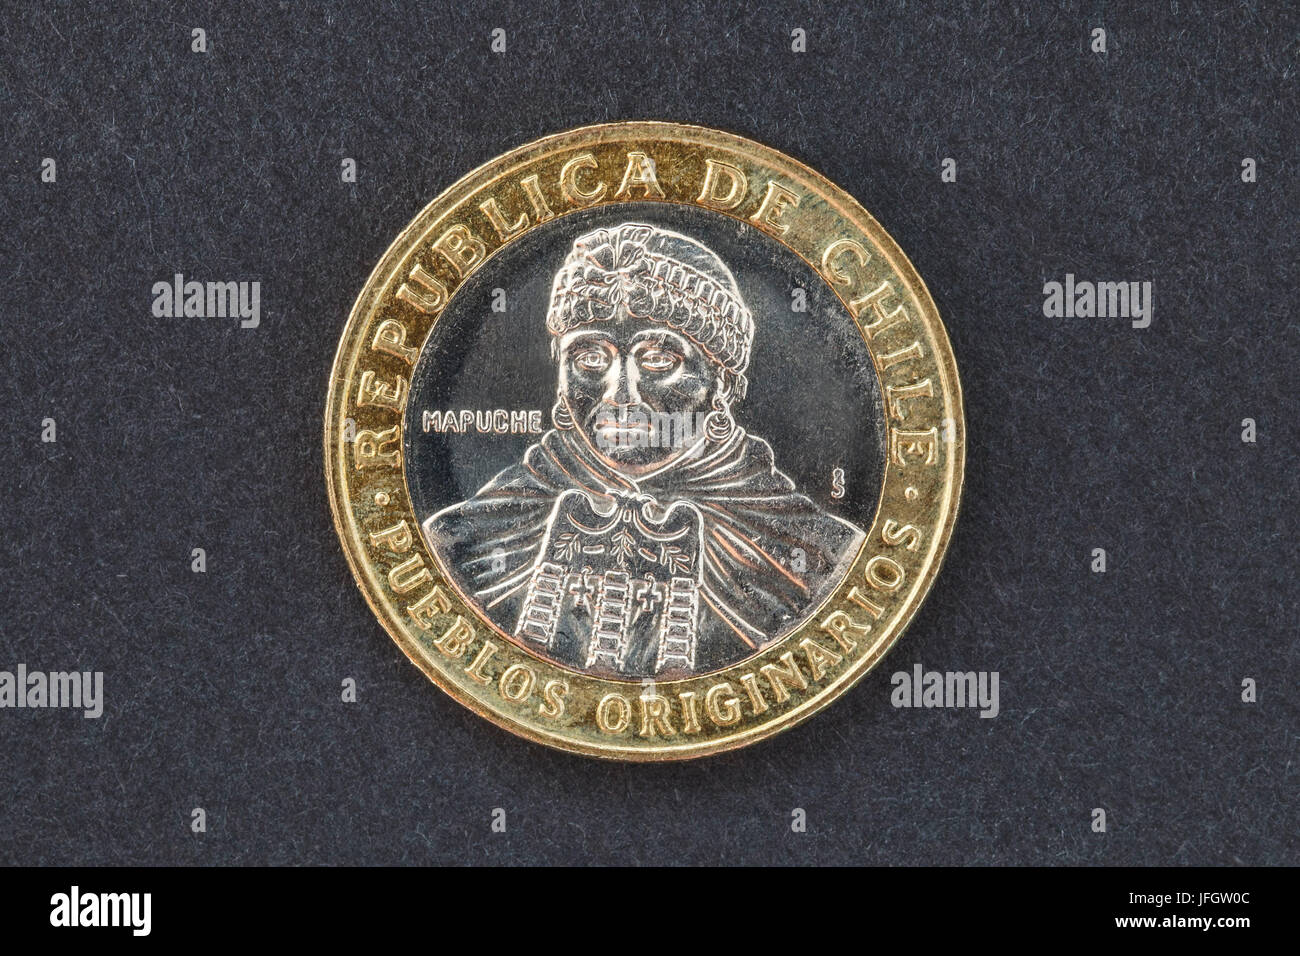 Chile, 100 pesos of coin, Mapuche-Indigena - Stock Image